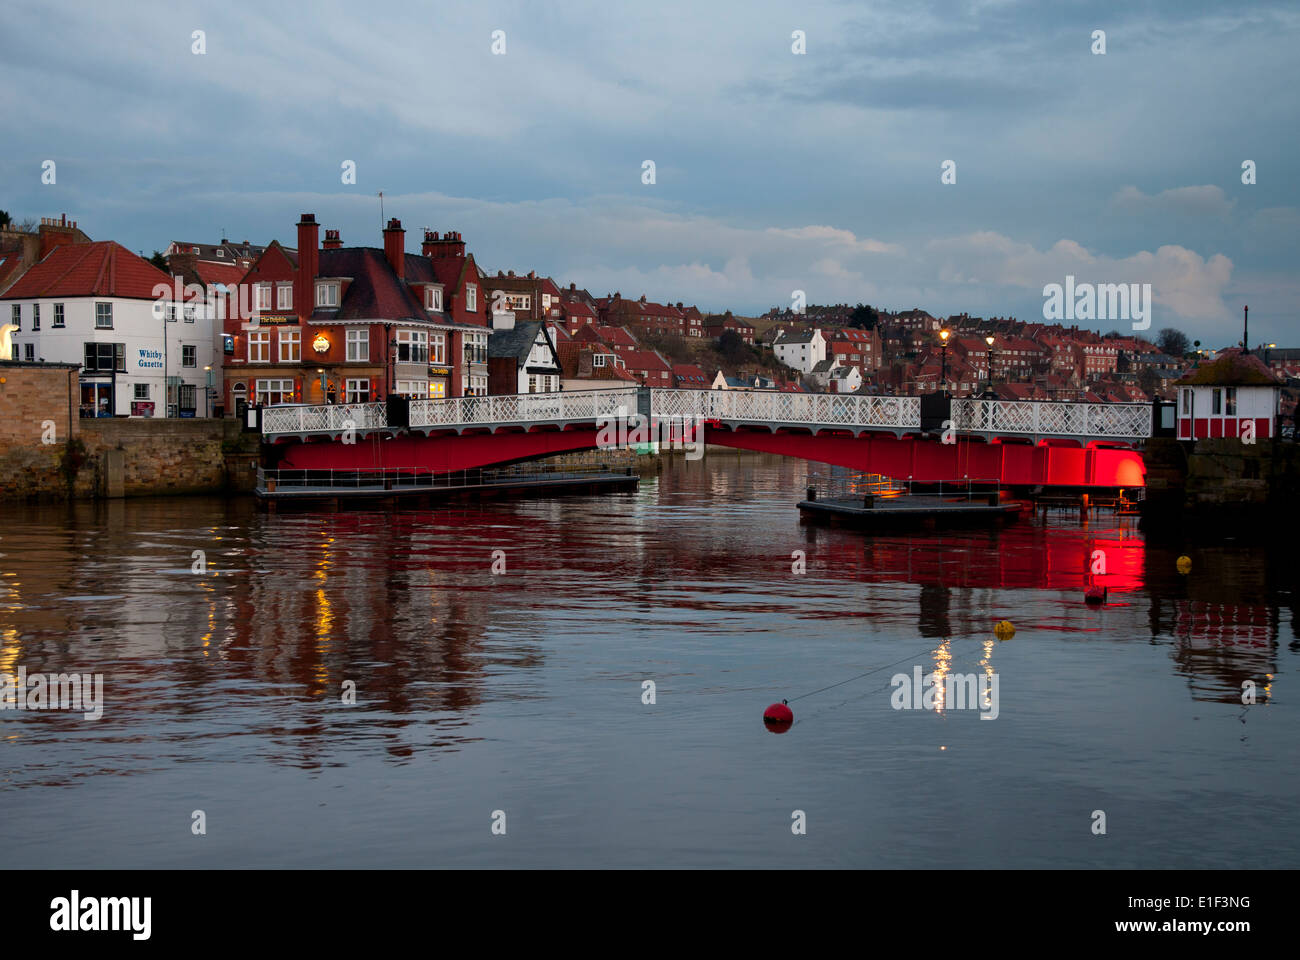 The swing bridge over the River Esk at dusk. Whitby, North Yorkshire. March. - Stock Image